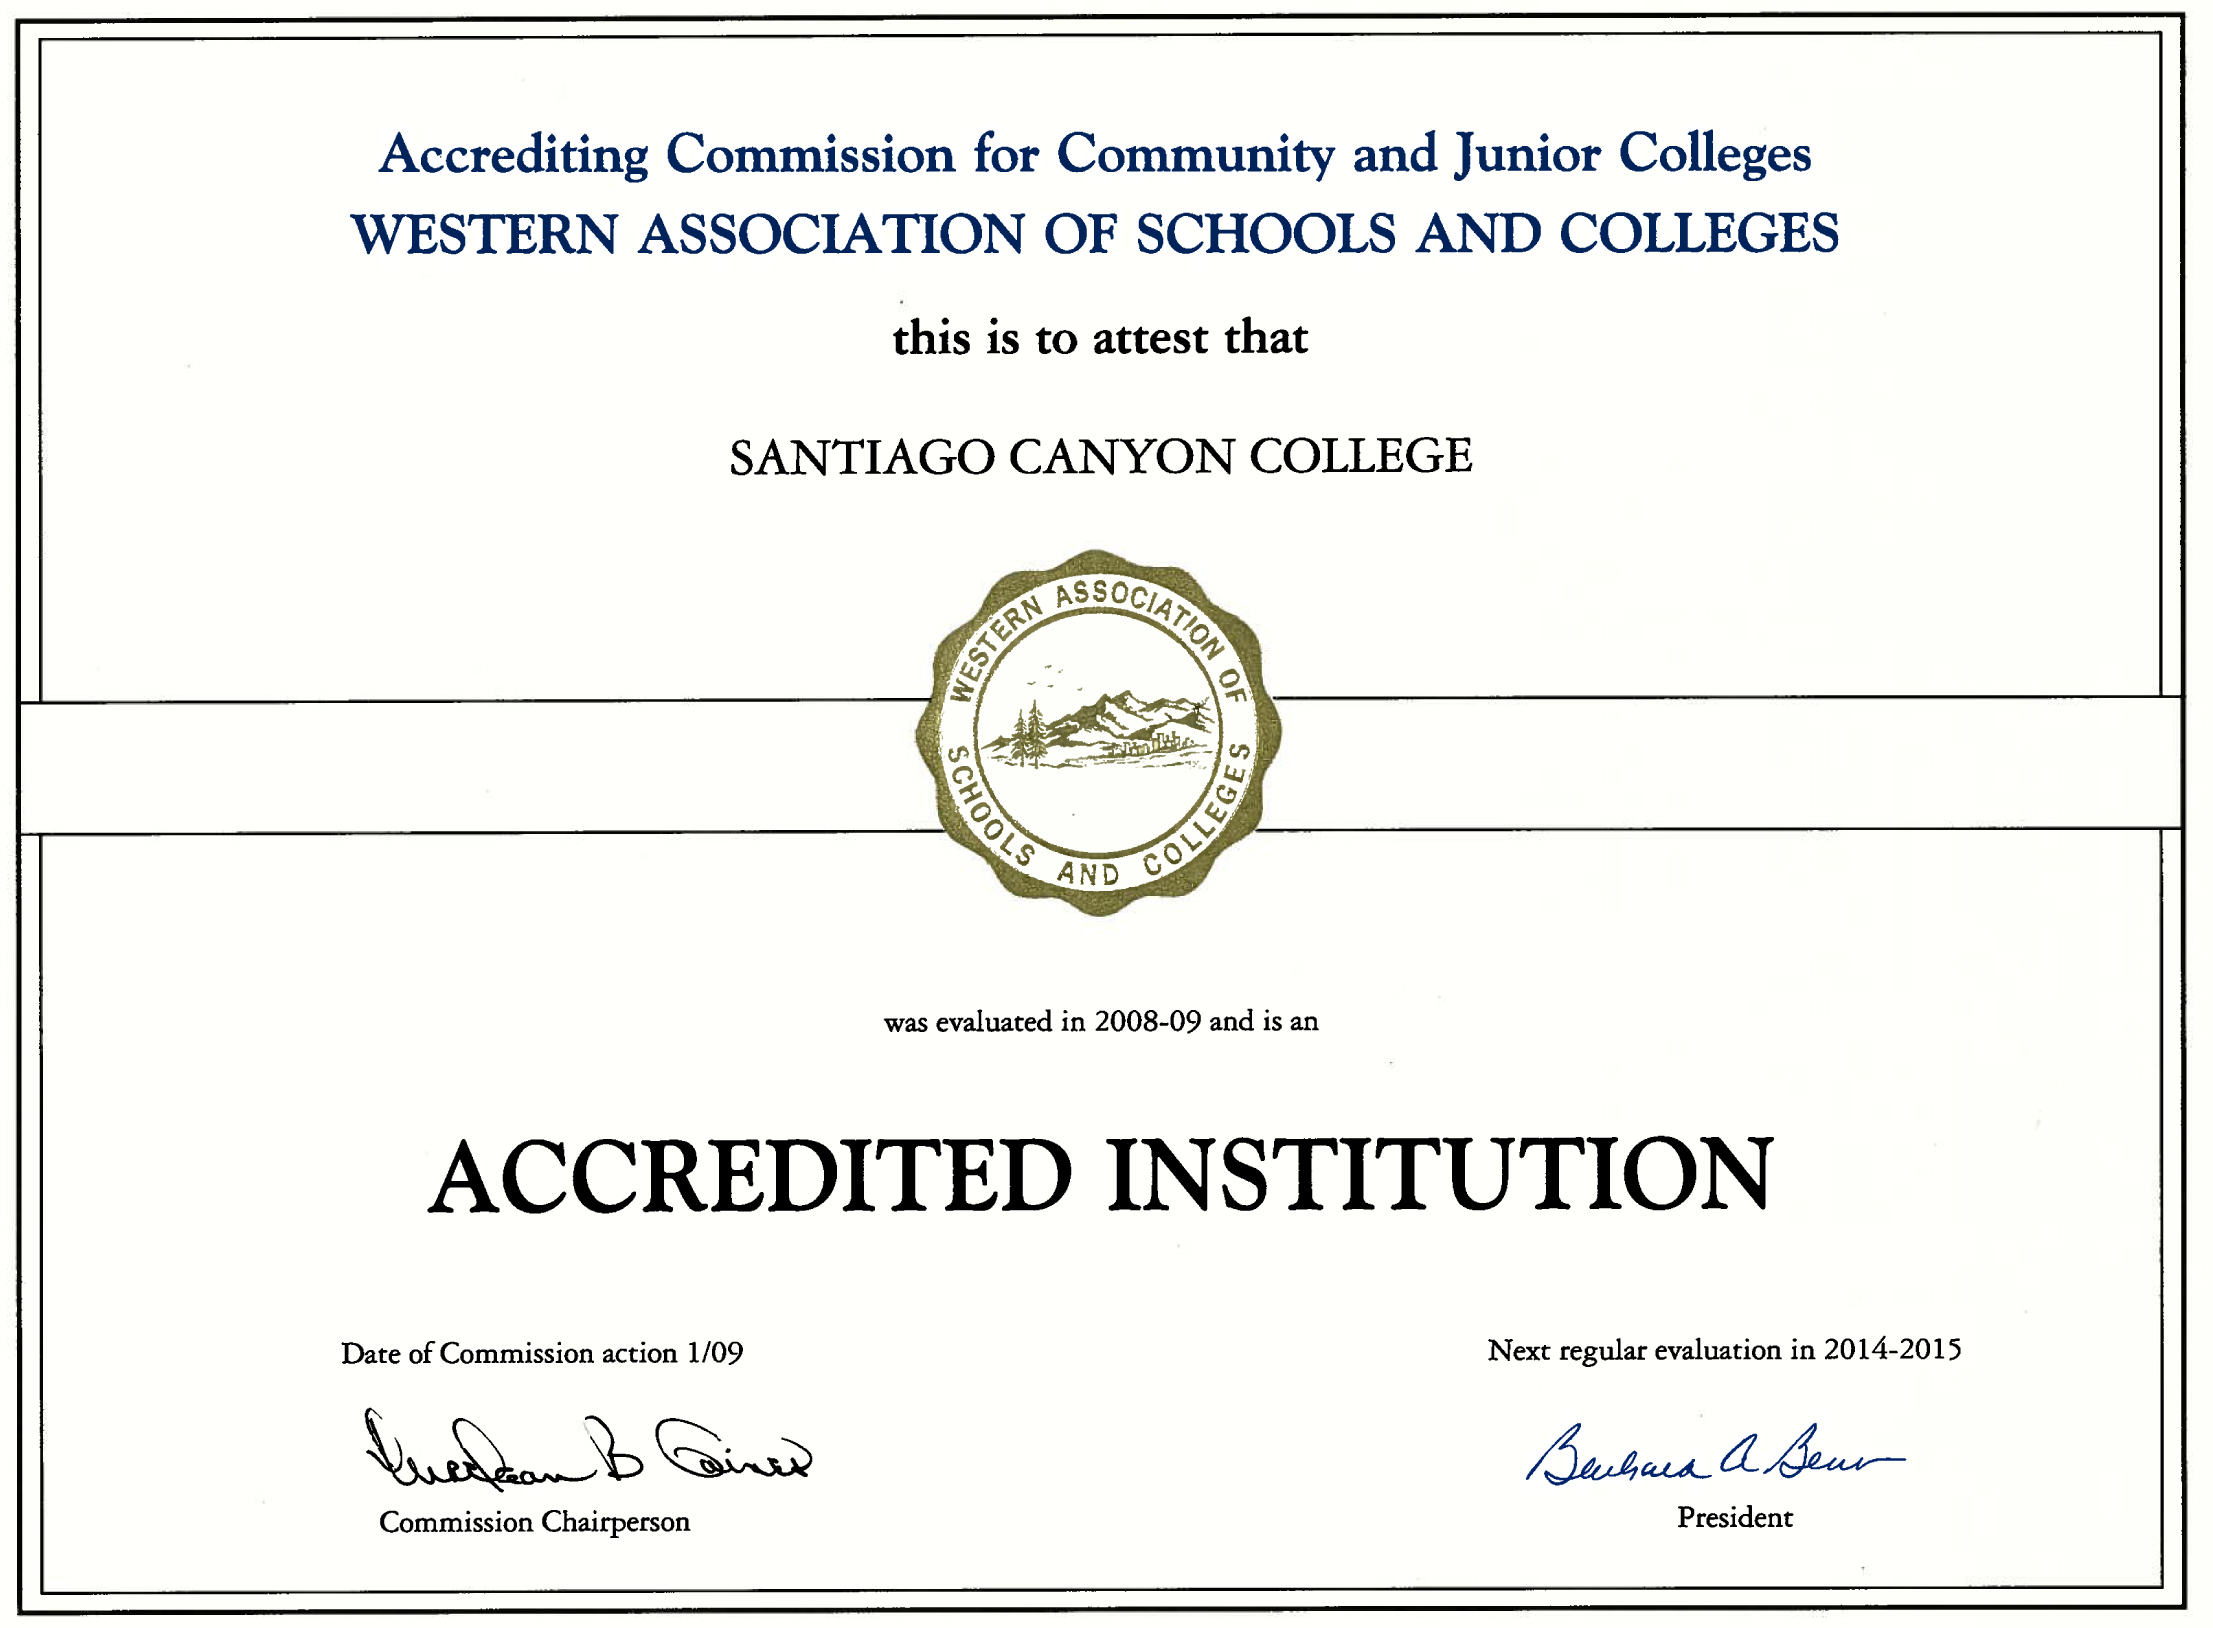 accreditation certificate